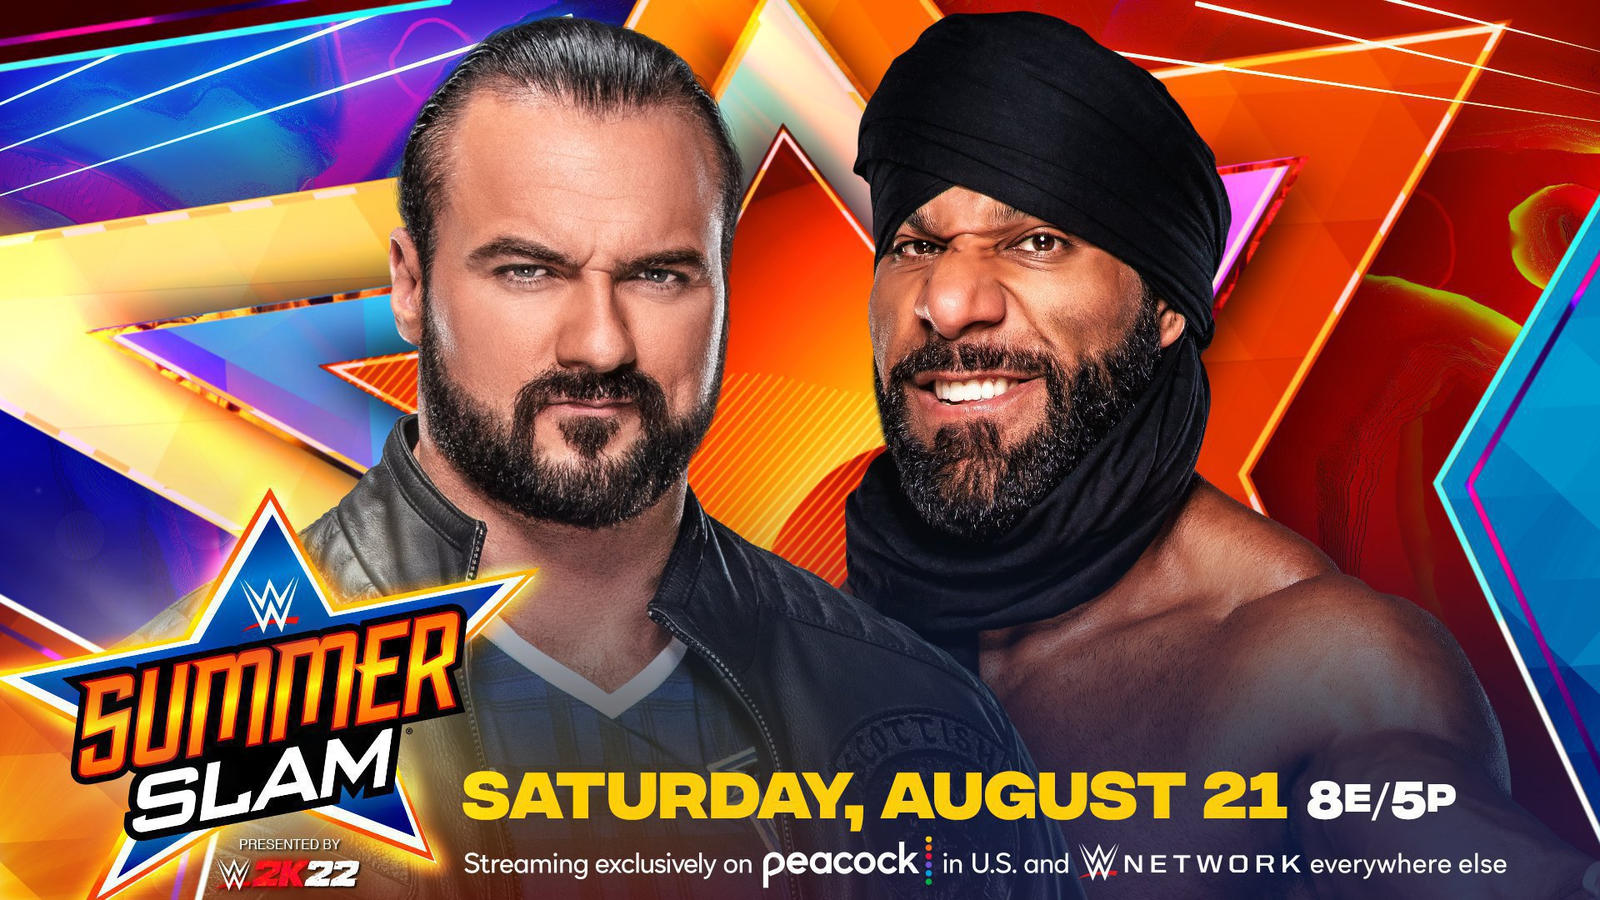 Big Title Change On WWE Smackdown: New Summerslam 2021 Match Revealed 60